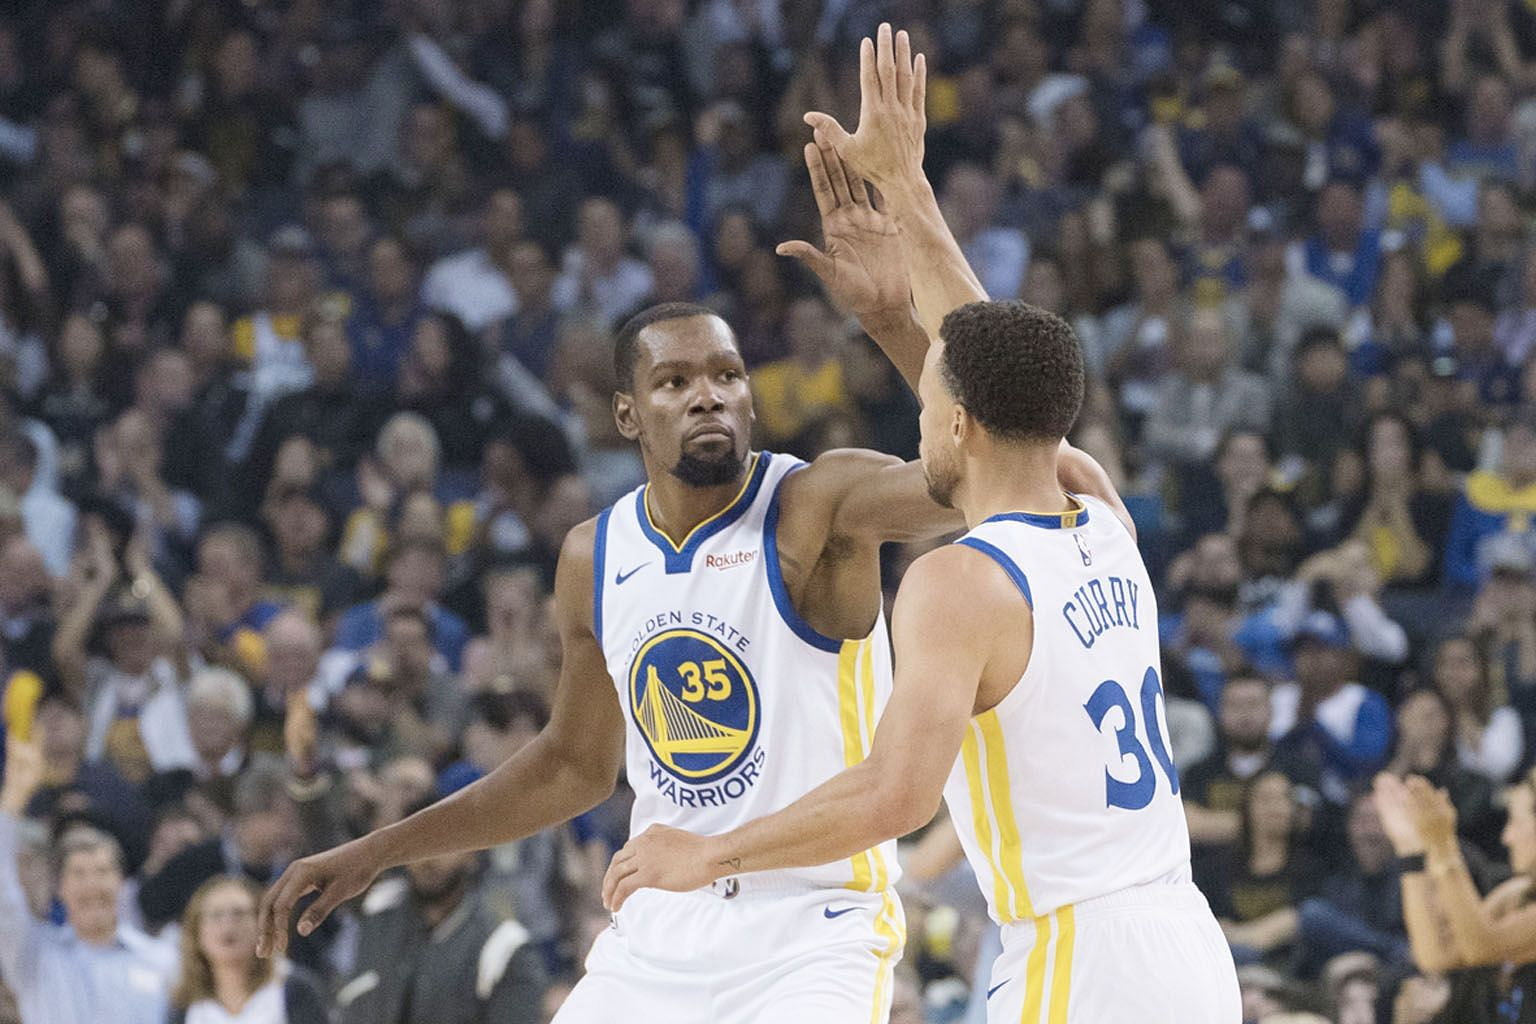 Golden State Warriors' Kevin Durant congratulating his teammate Stephen Curry for nailing a three-pointer during their 108-100 opening win over the Oklahoma City Thunder.